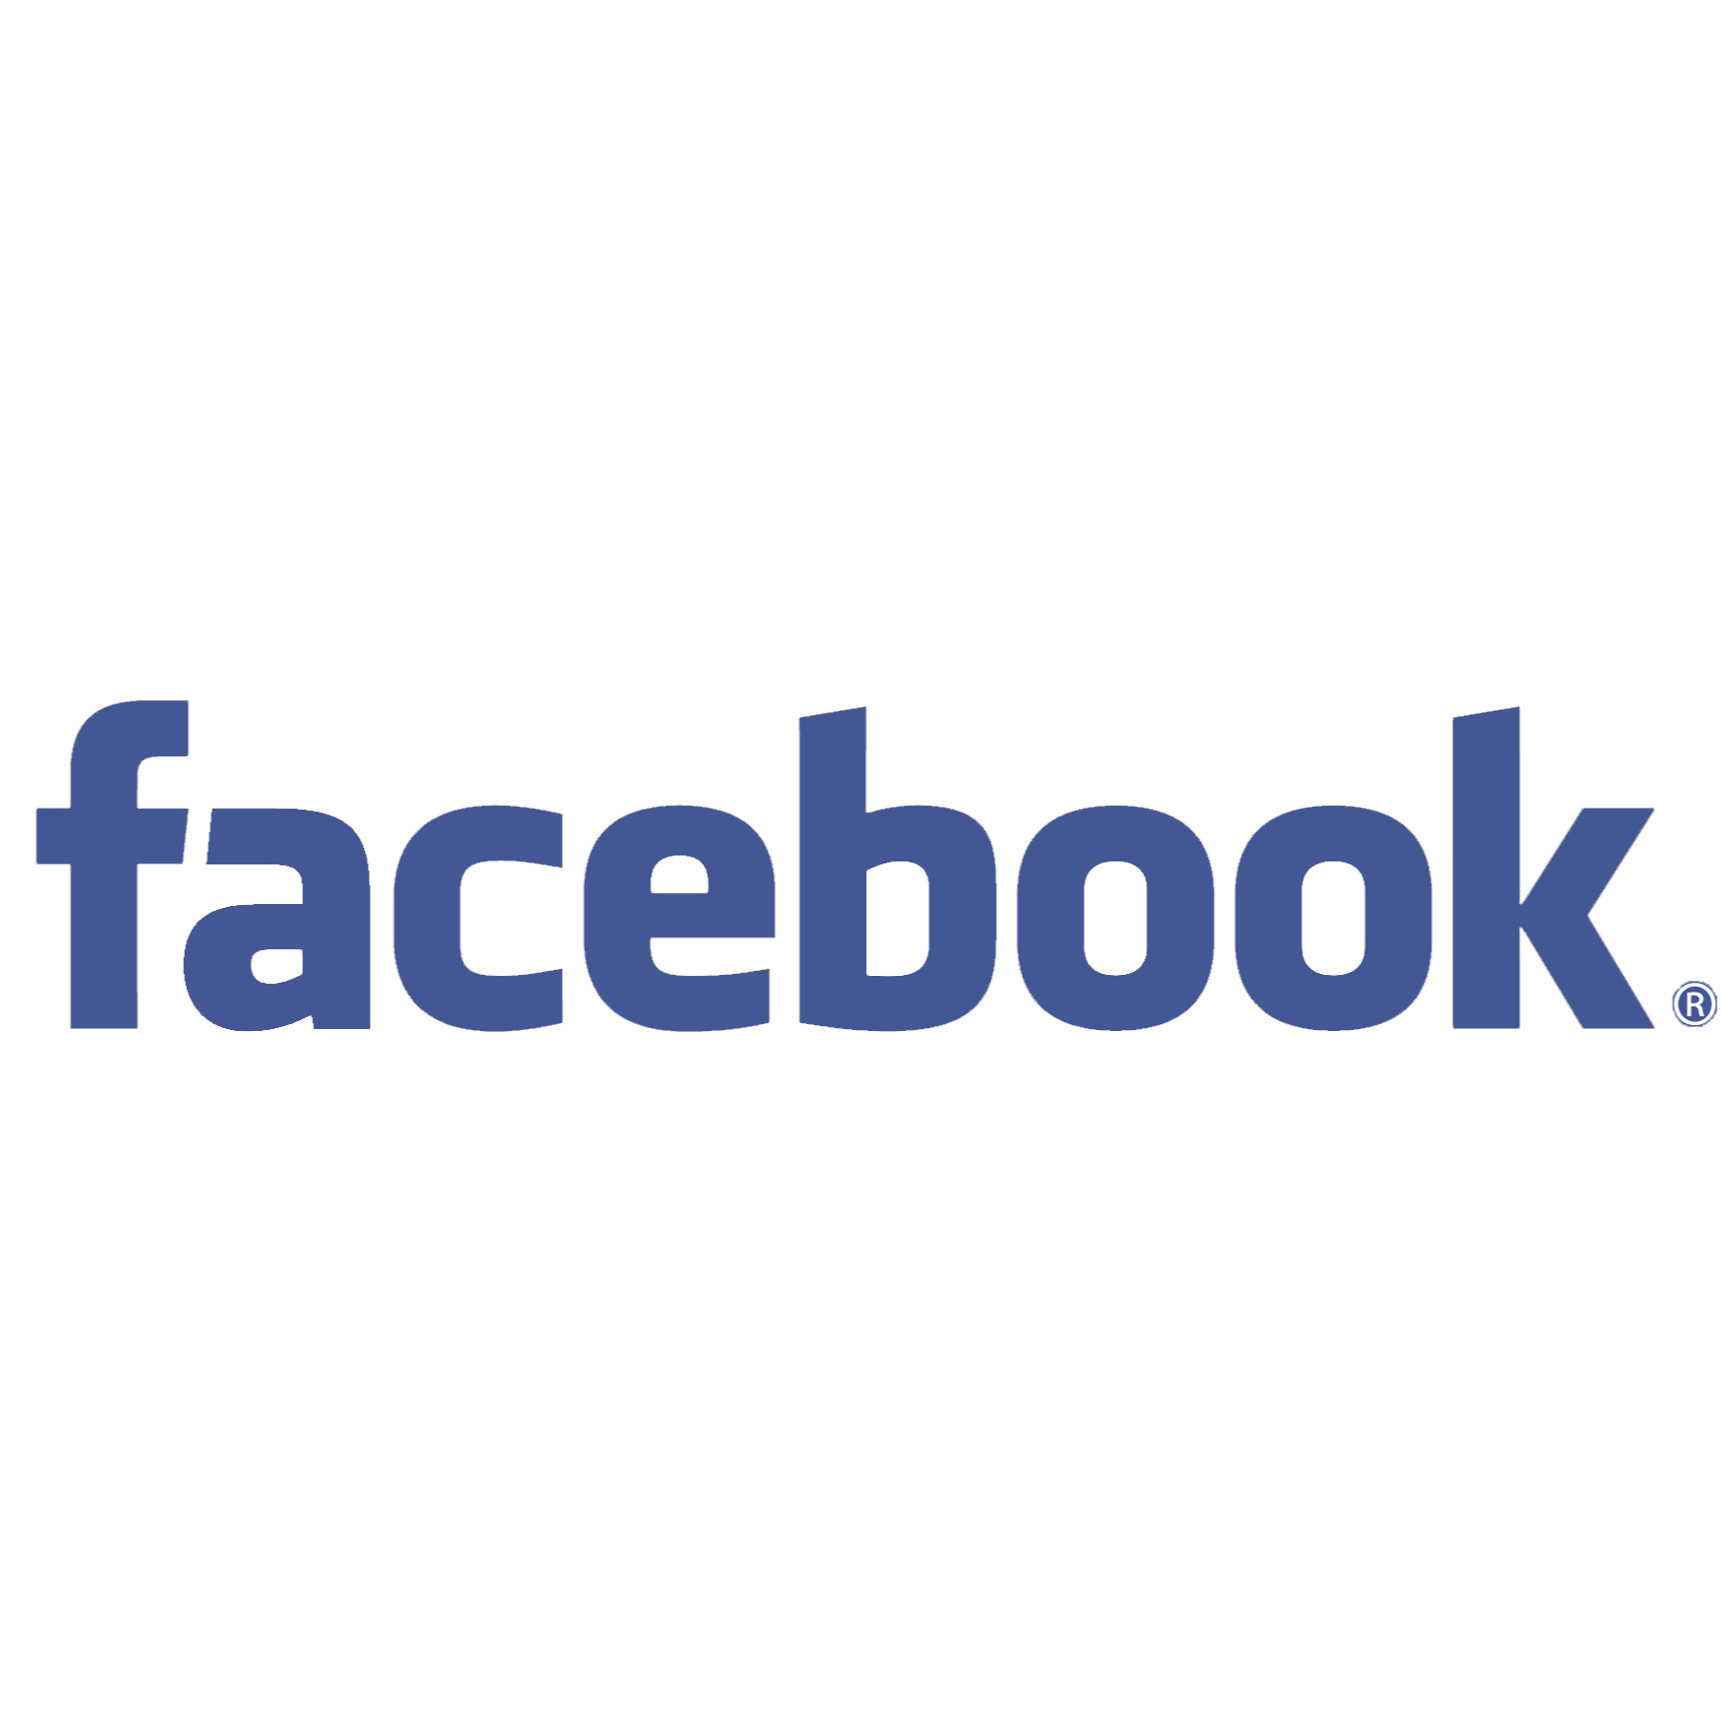 Over 540 Million Facebook User Records Were Found on Amazon Cloud Servers